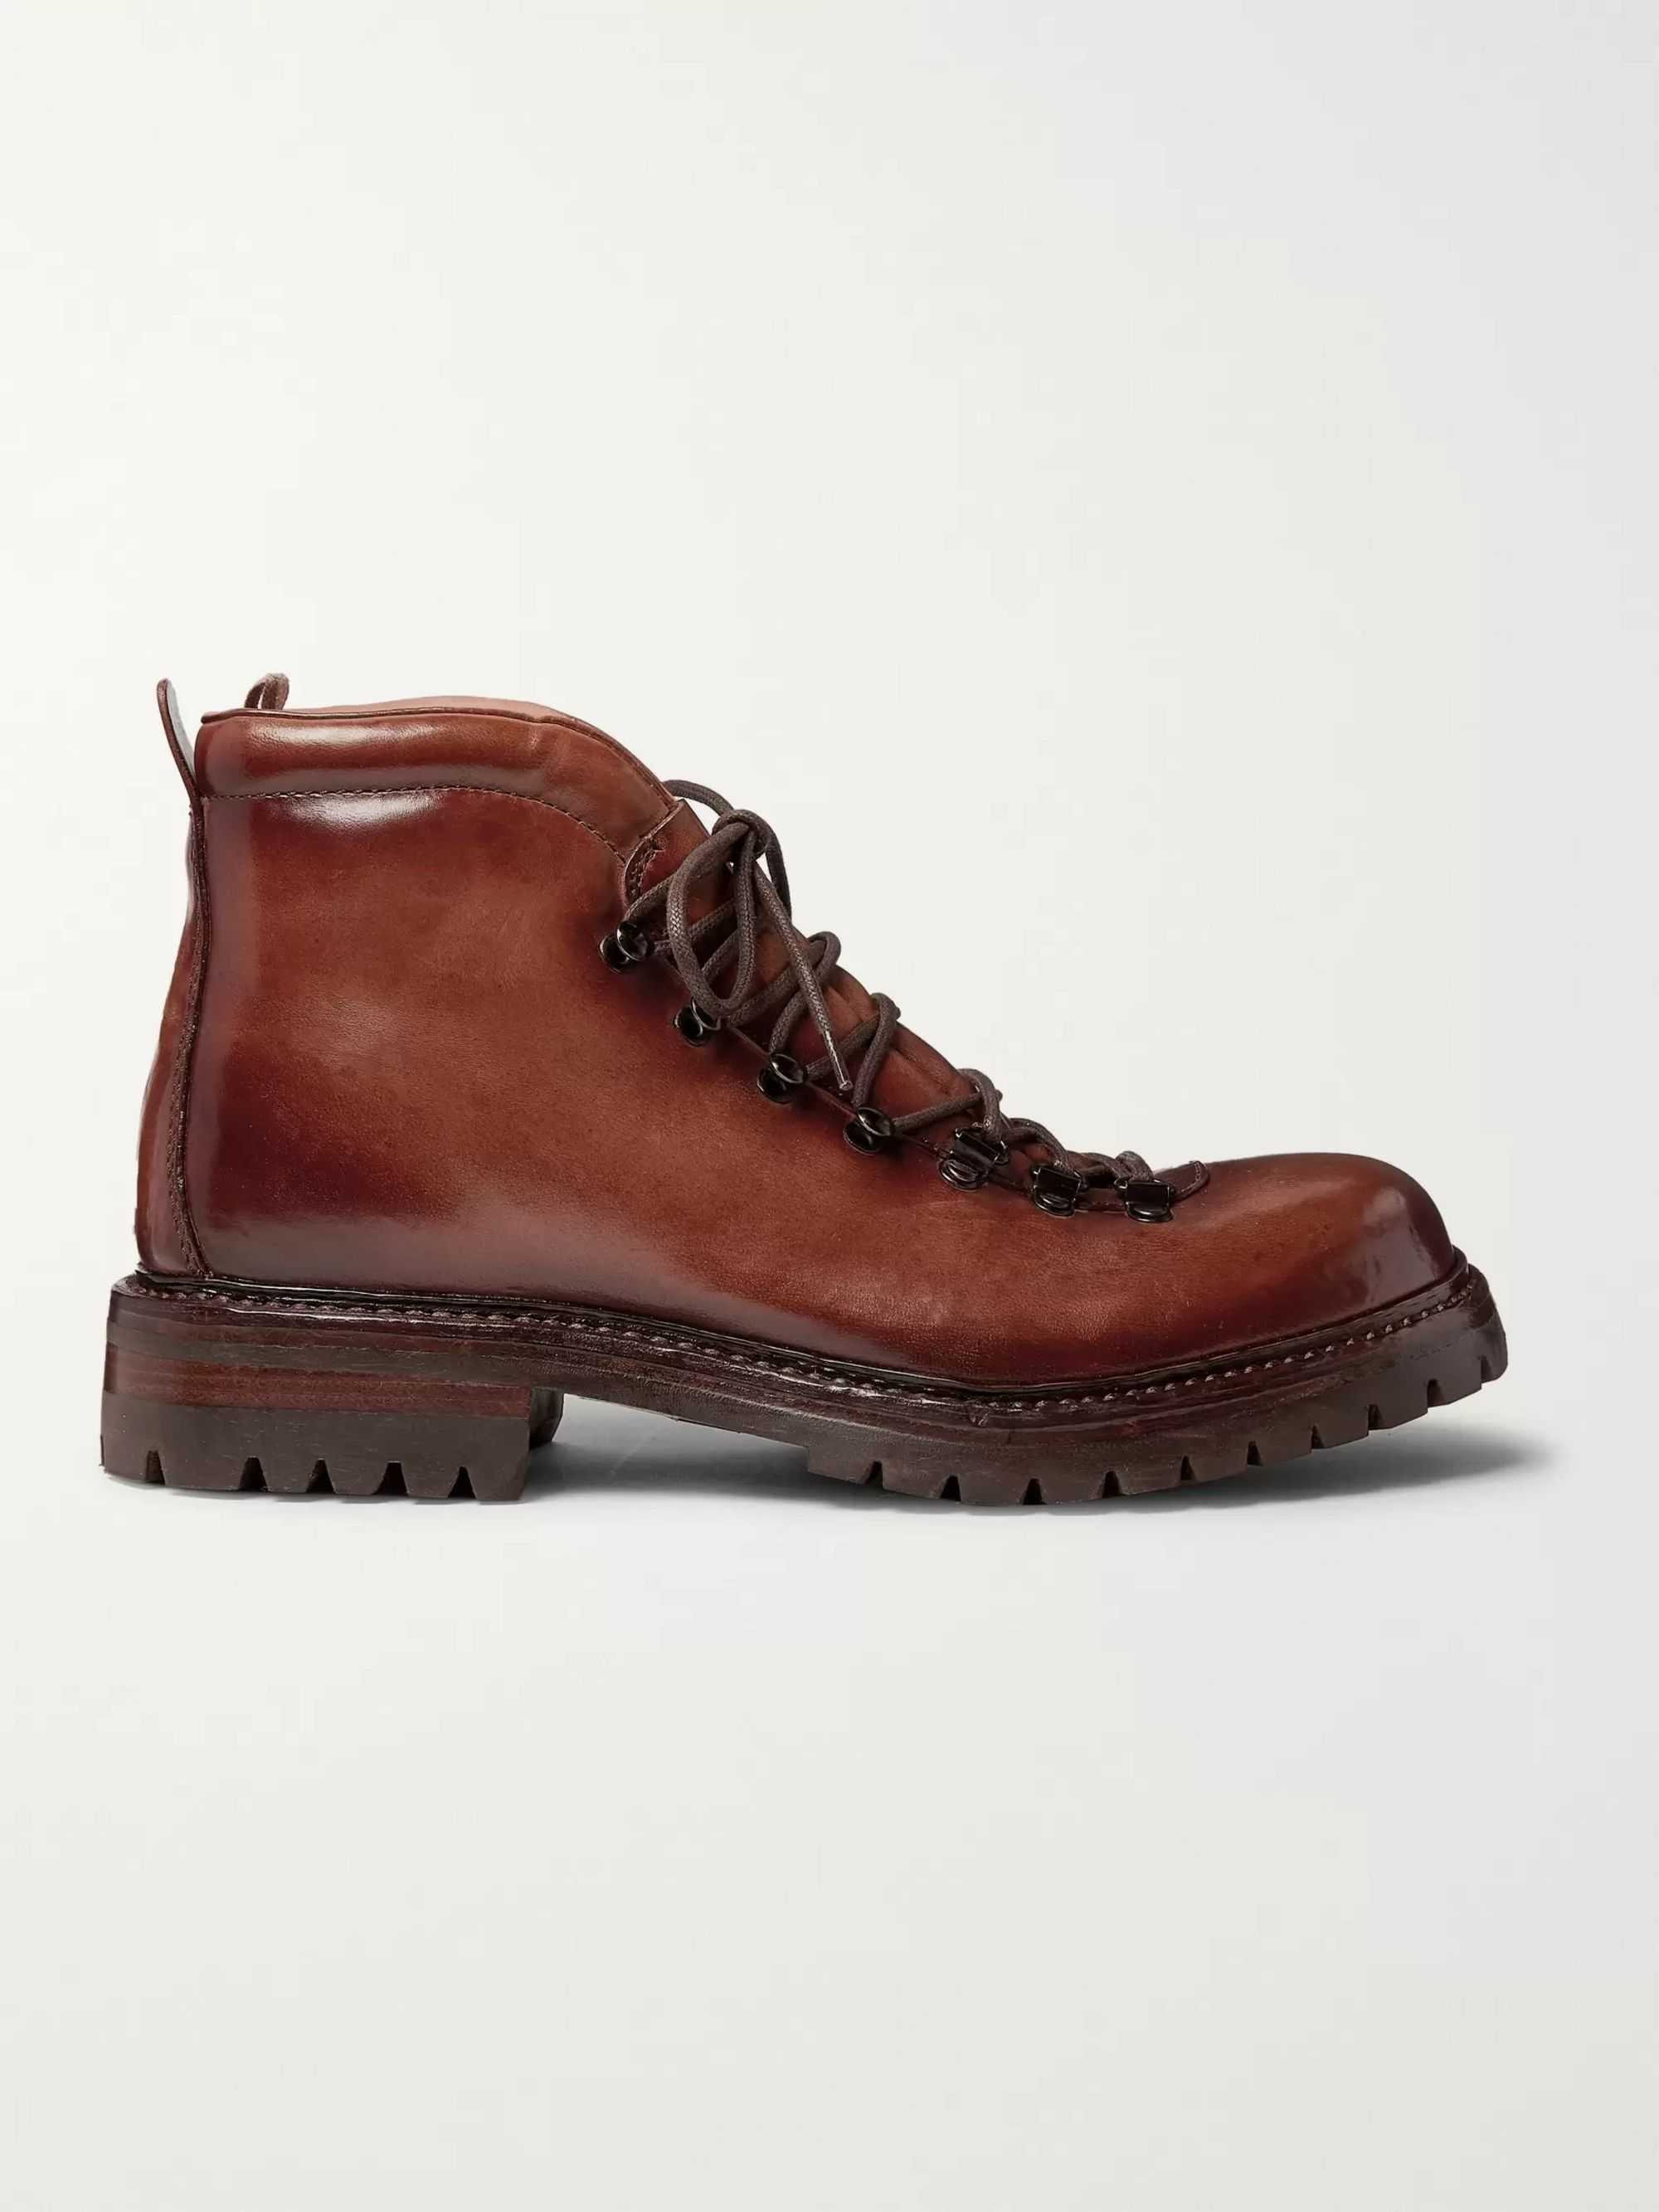 Officine Creative Manchester Shearling-Lined Grained Leather Hiking Boots